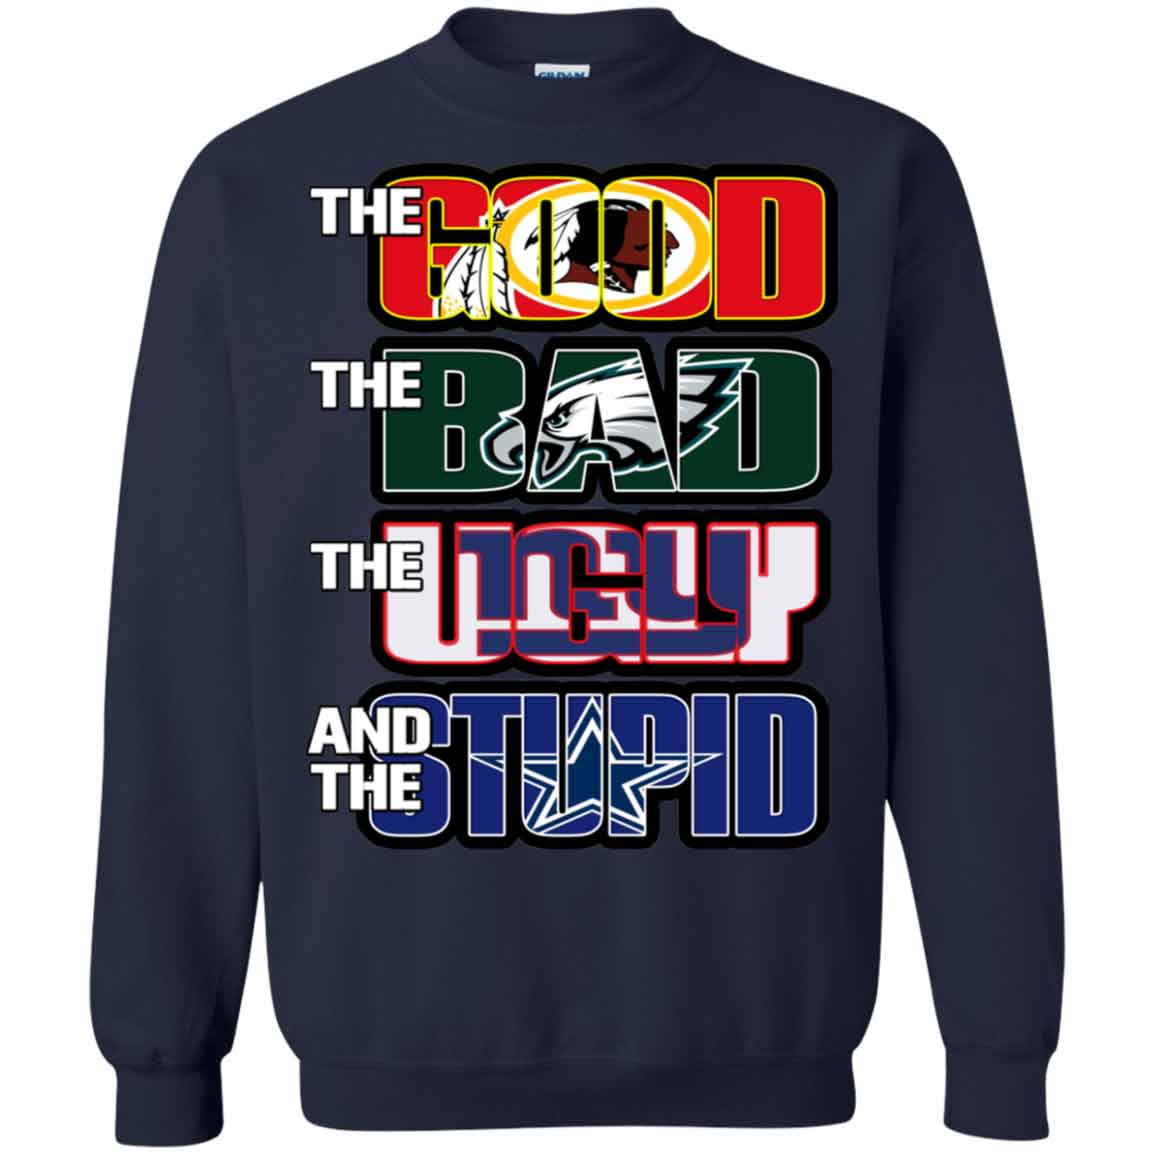 low priced 9b009 833be Washington Redskins The Good The Bad The Ugly And The Stupid Christmas Ugly  Sweater Hoodies Sweatshirts